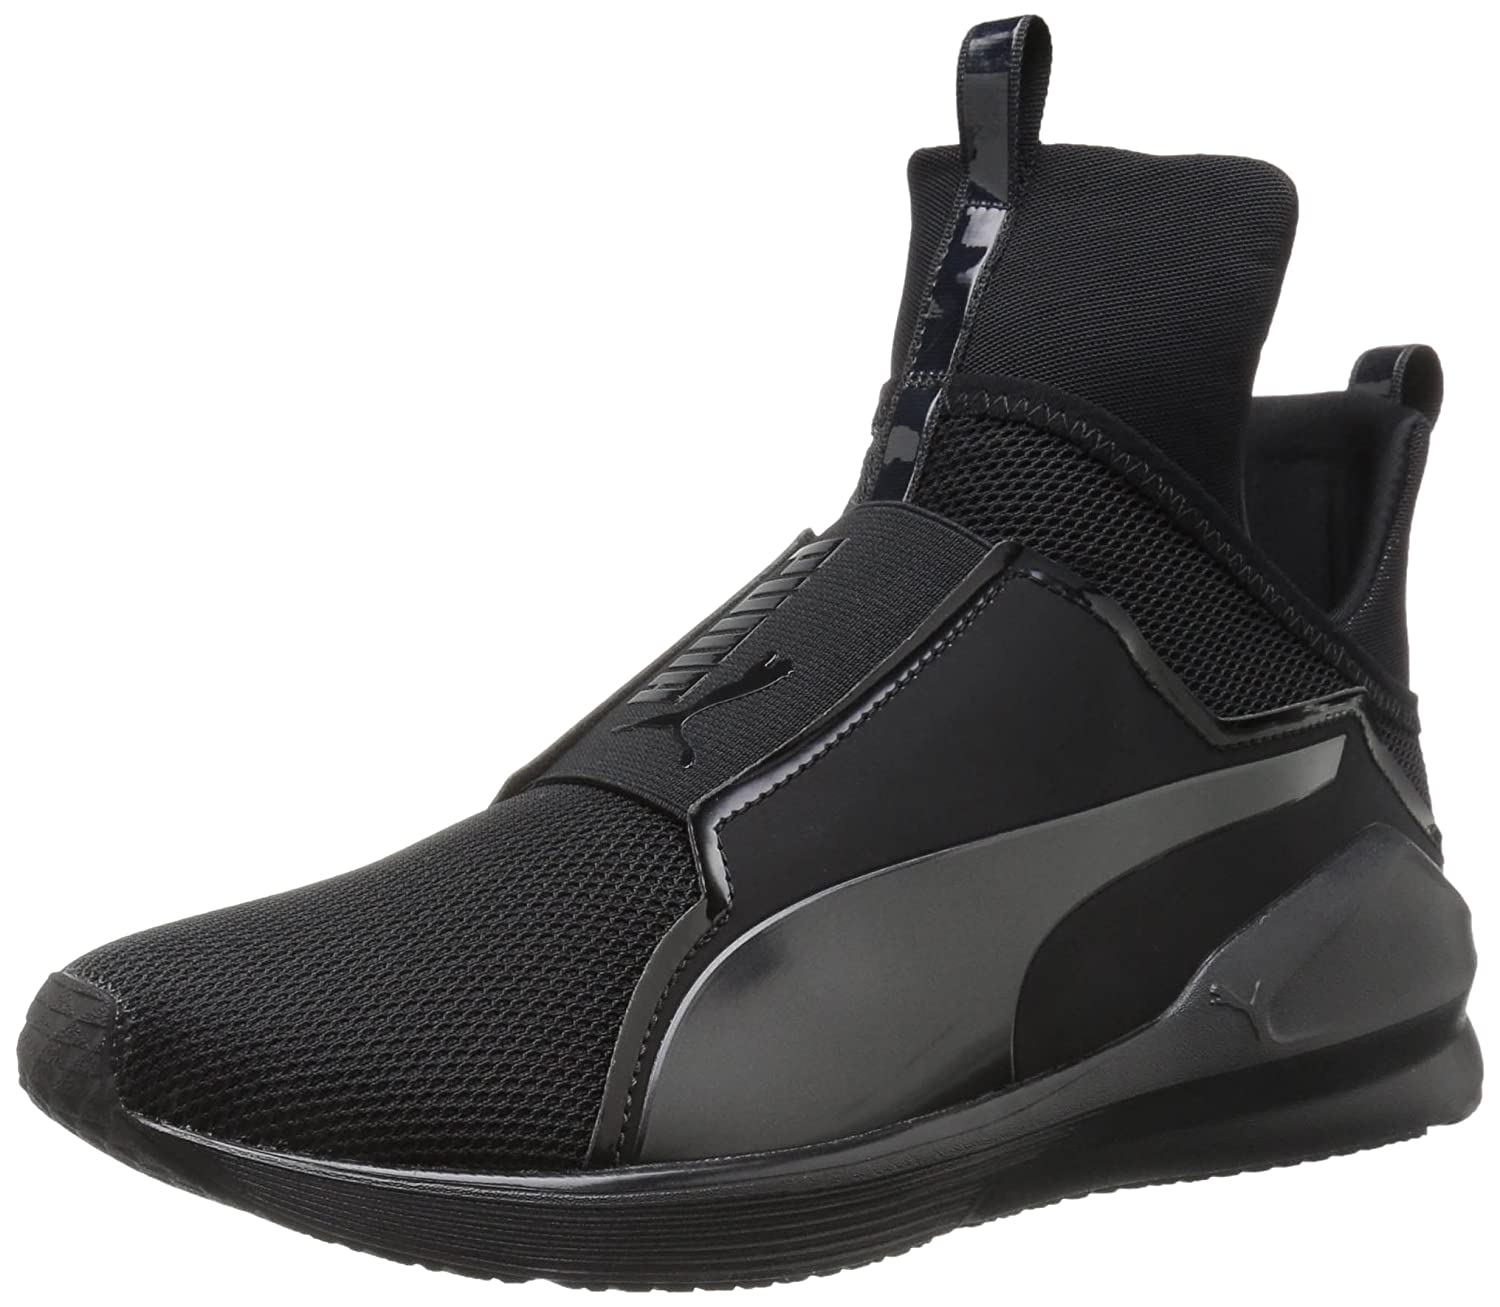 PUMA Women's Fierce Core Cross-Trainer Shoe B01BOUG0SK 6 B(M) US|Puma Black/Puma Black